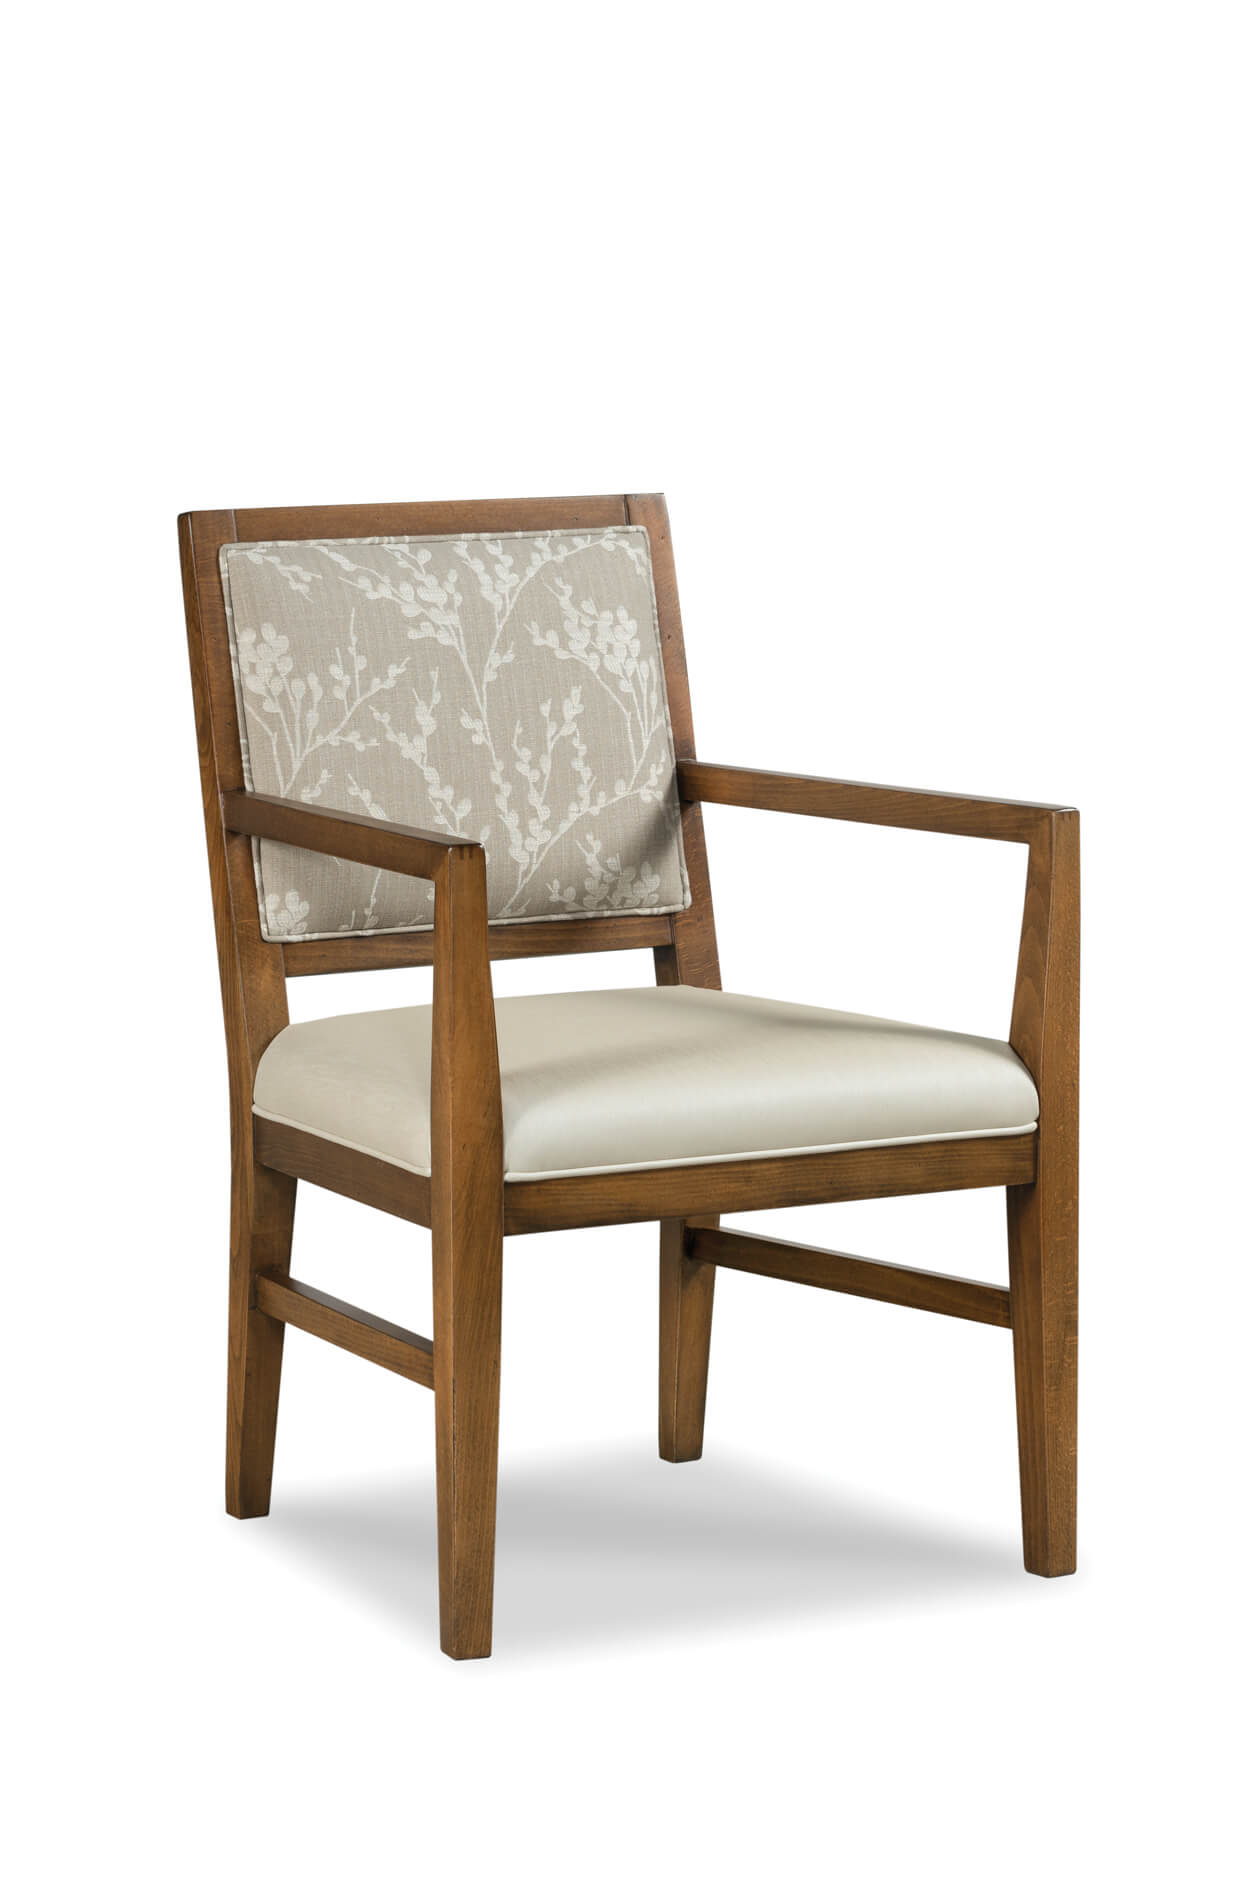 Fairfield's Potter Upholstered Dining Arm Chair